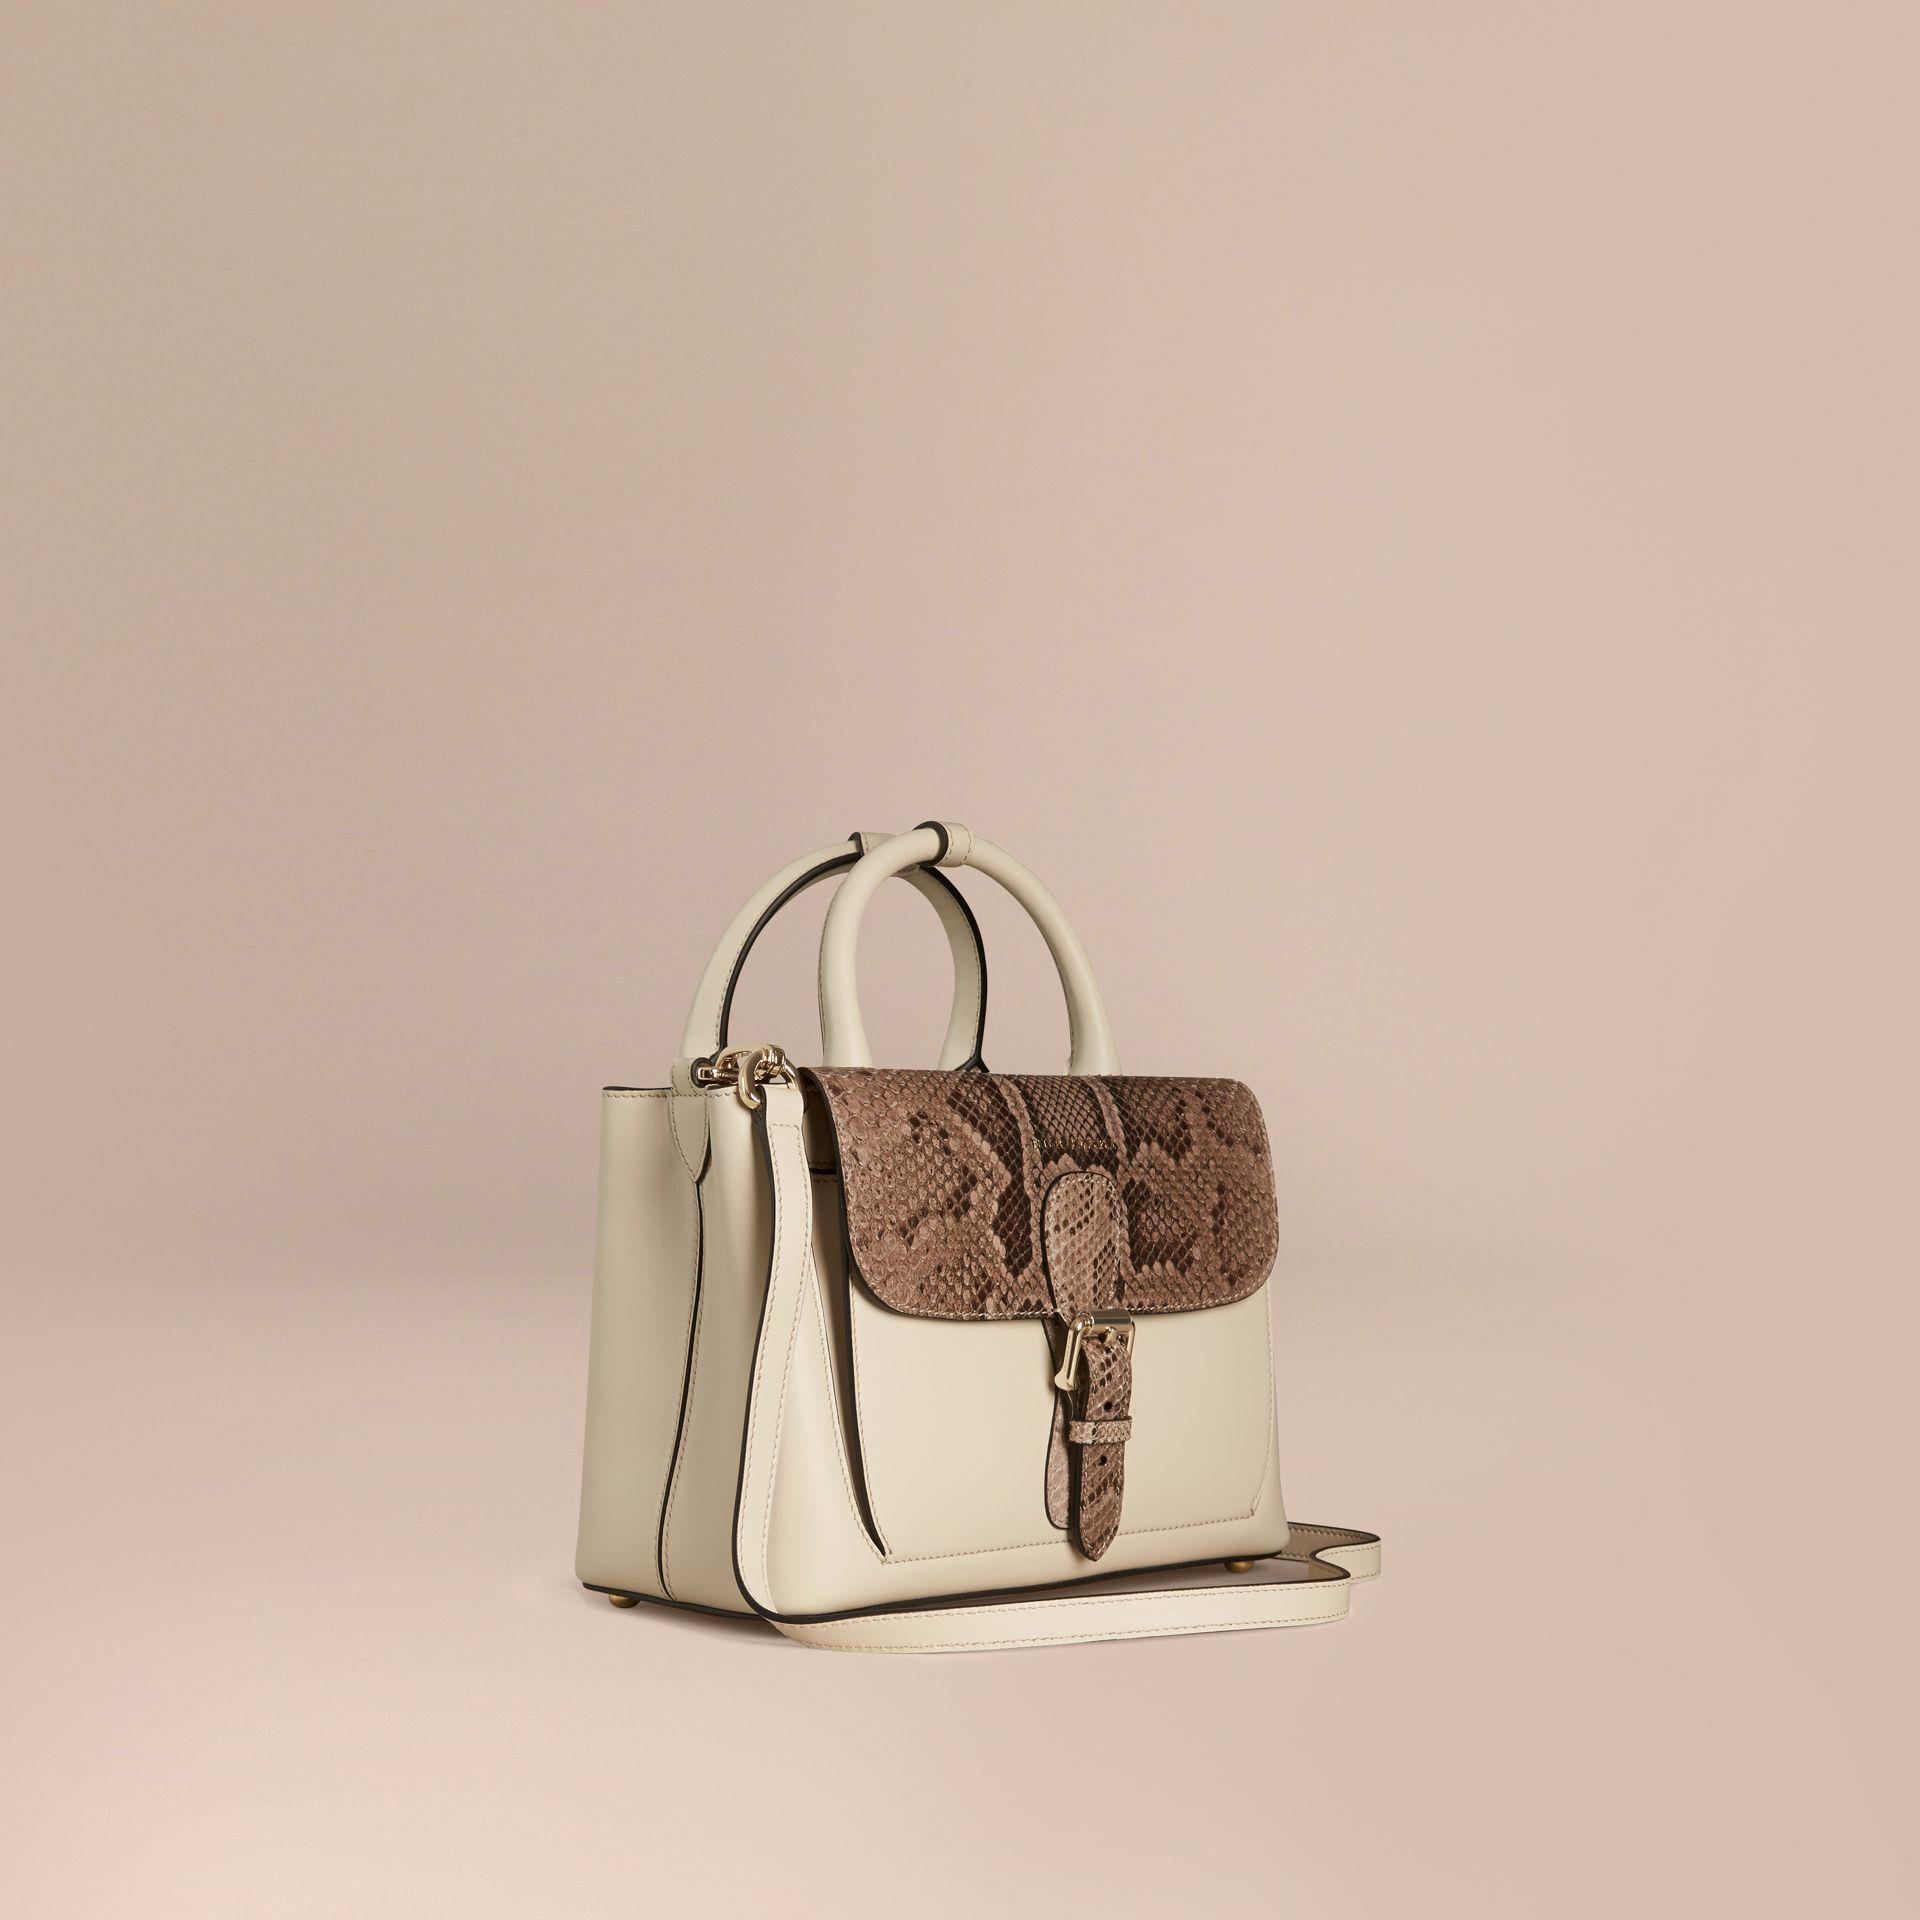 Stone The Small Saddle Bag in Smooth Leather and Python - gallery image 1